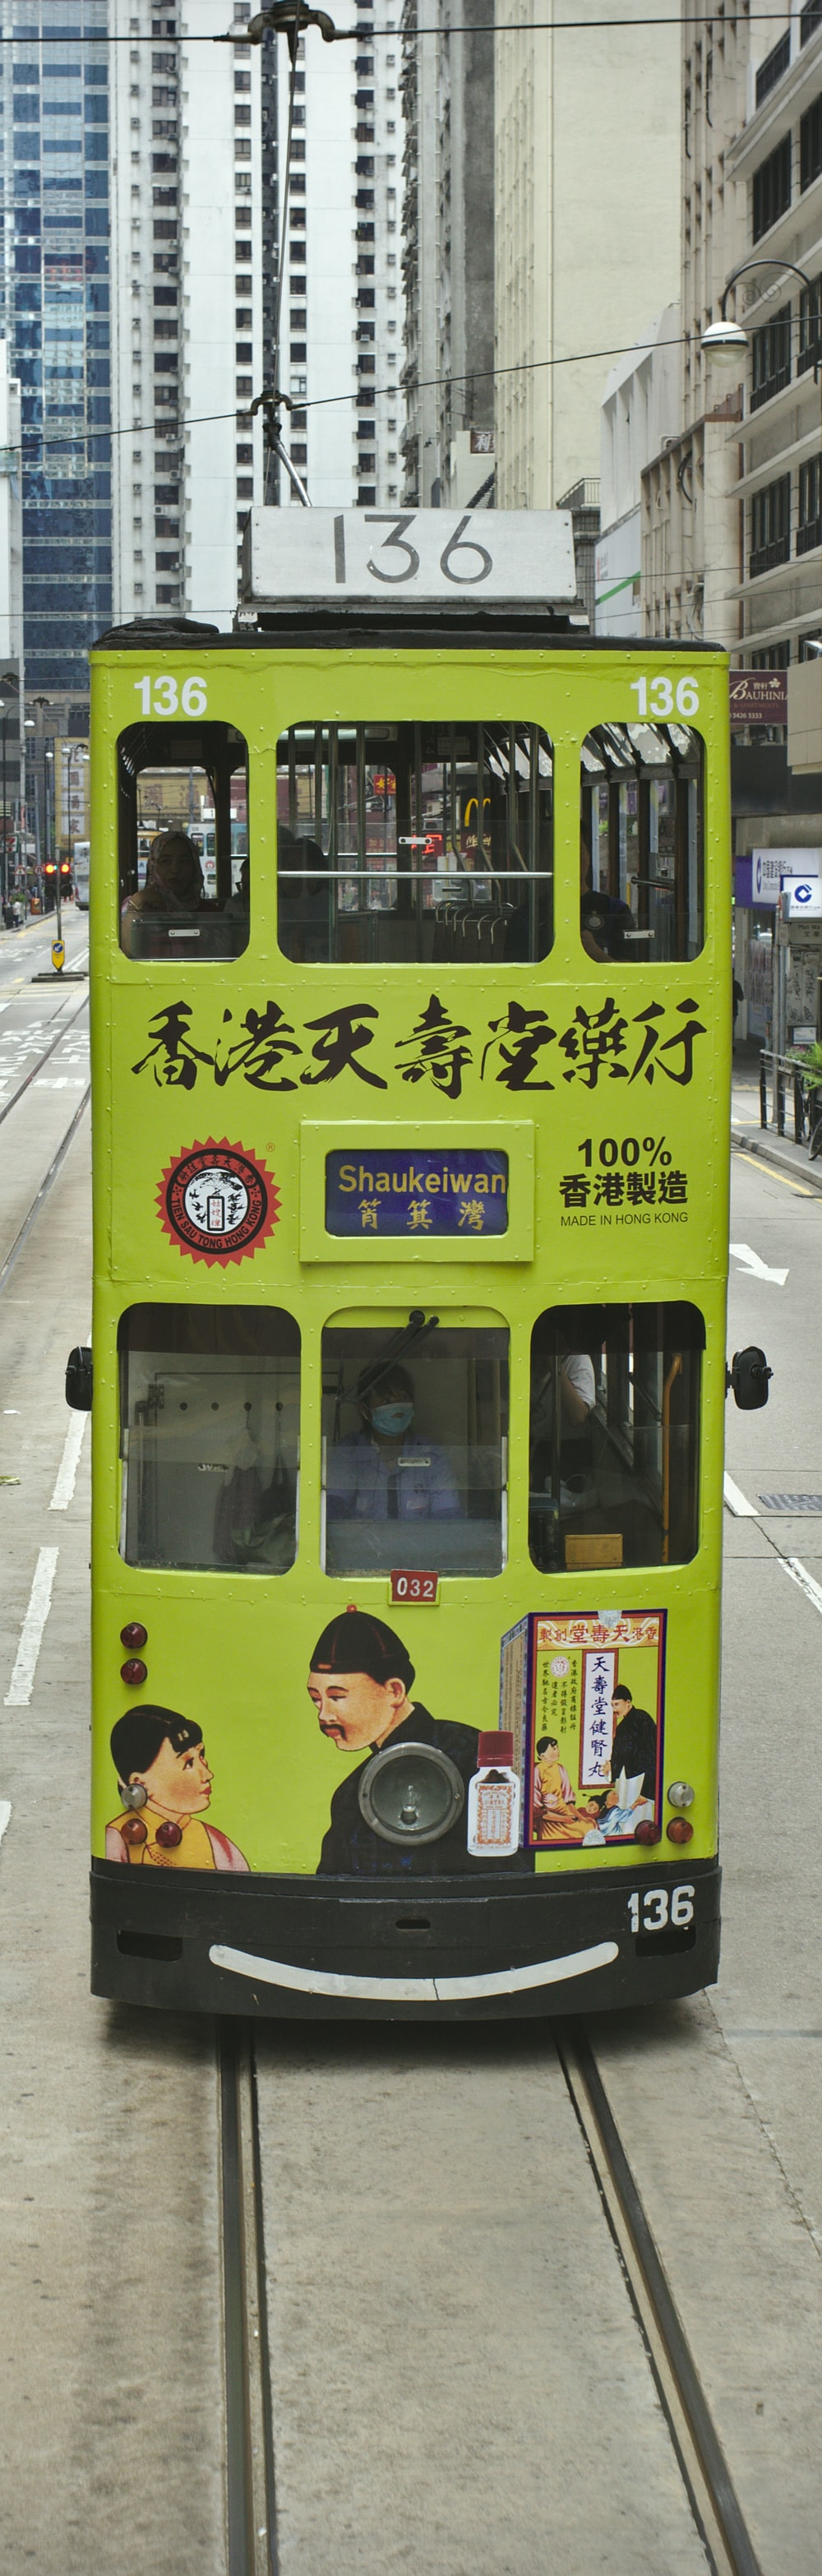 green double deck bus photography